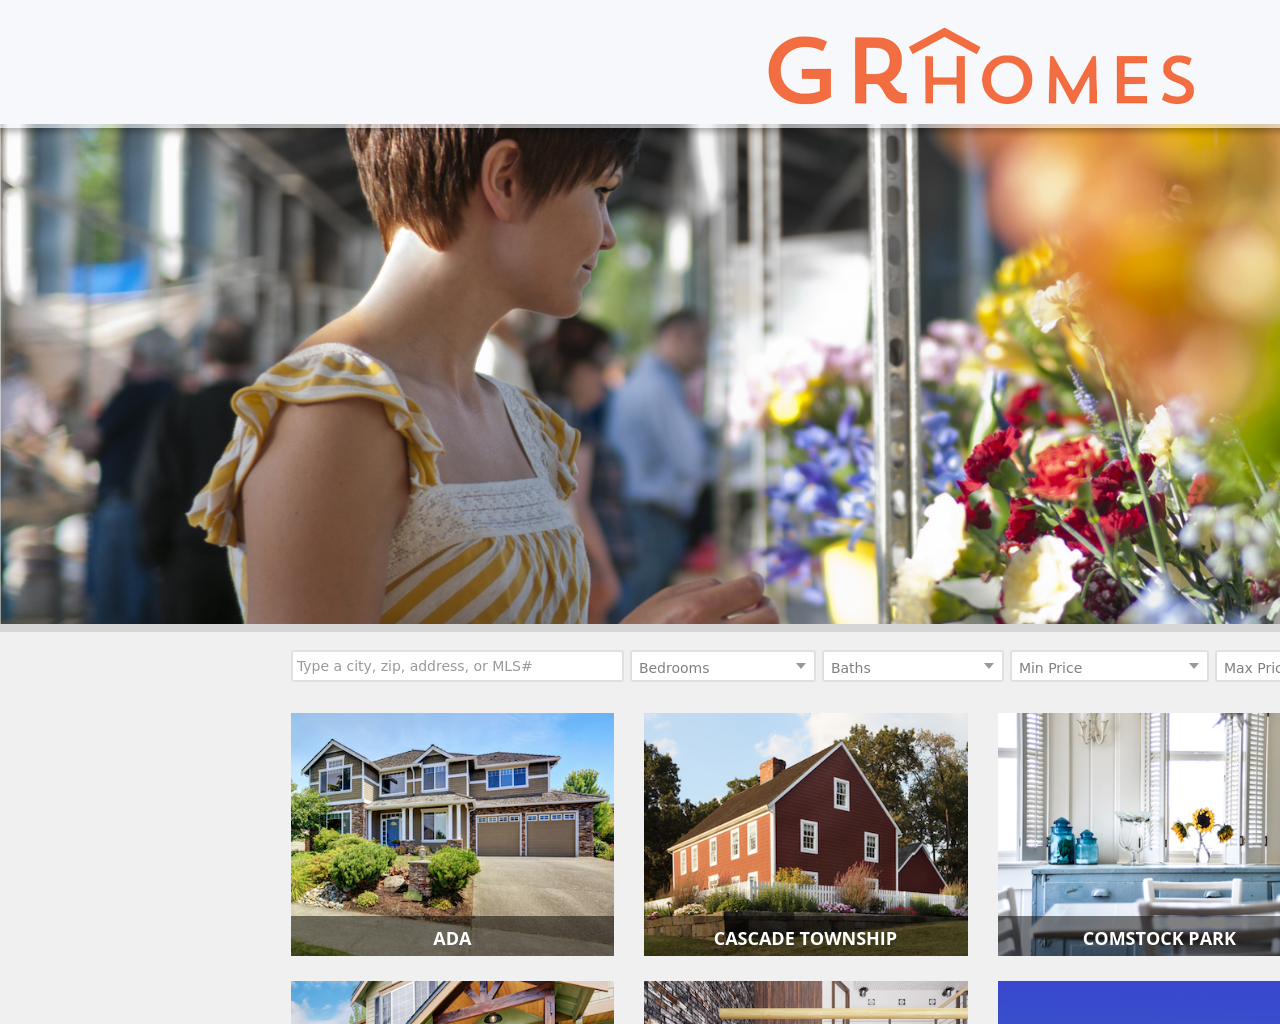 GR-Homes-Advertising-Reviews-Pricing